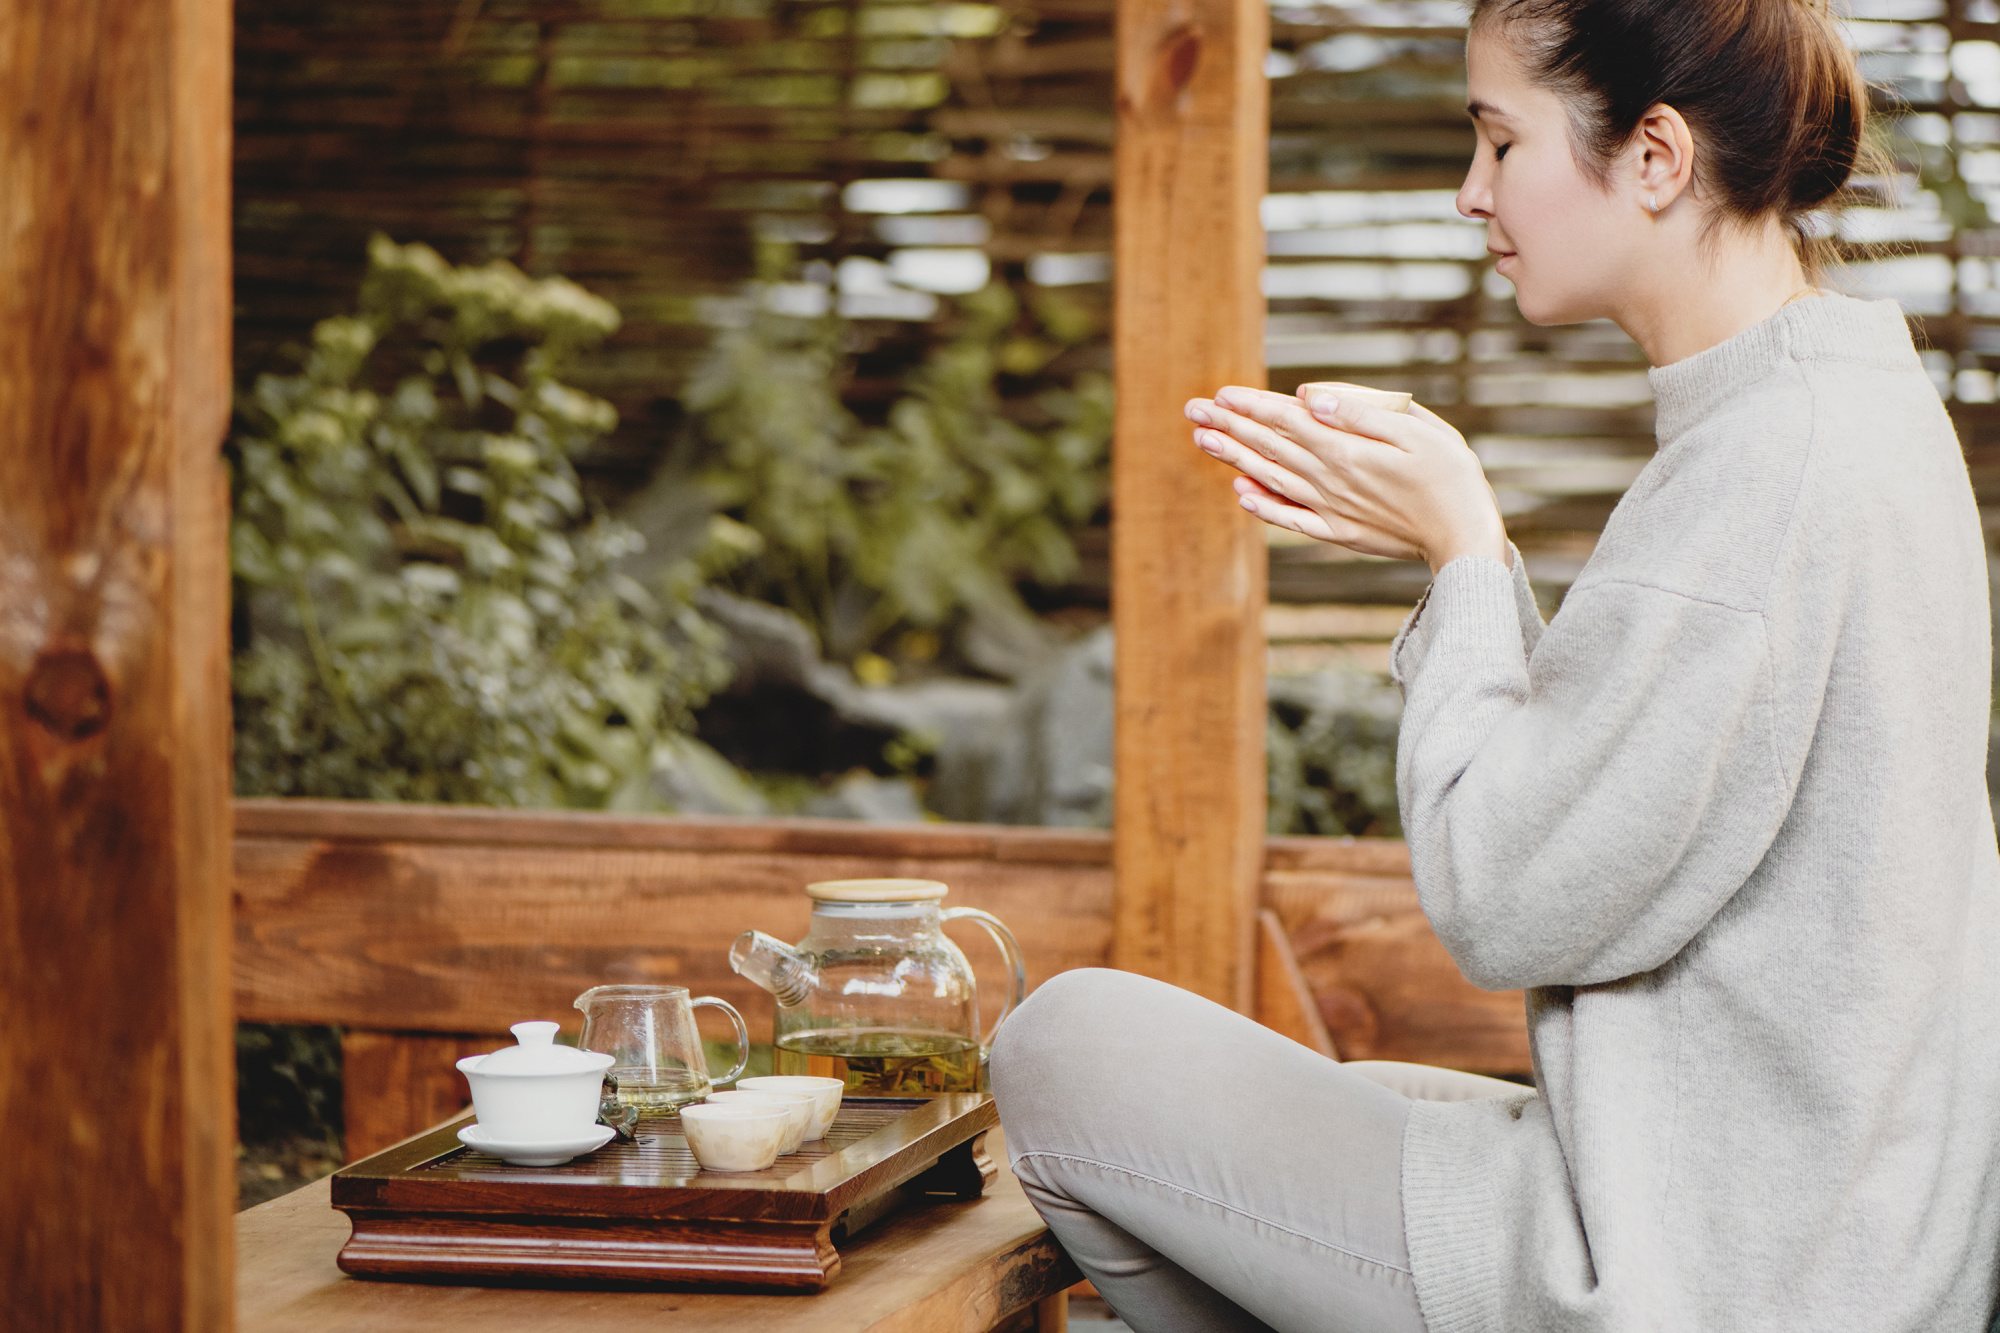 common menopause questions, Brunette in grey performing tea ritual